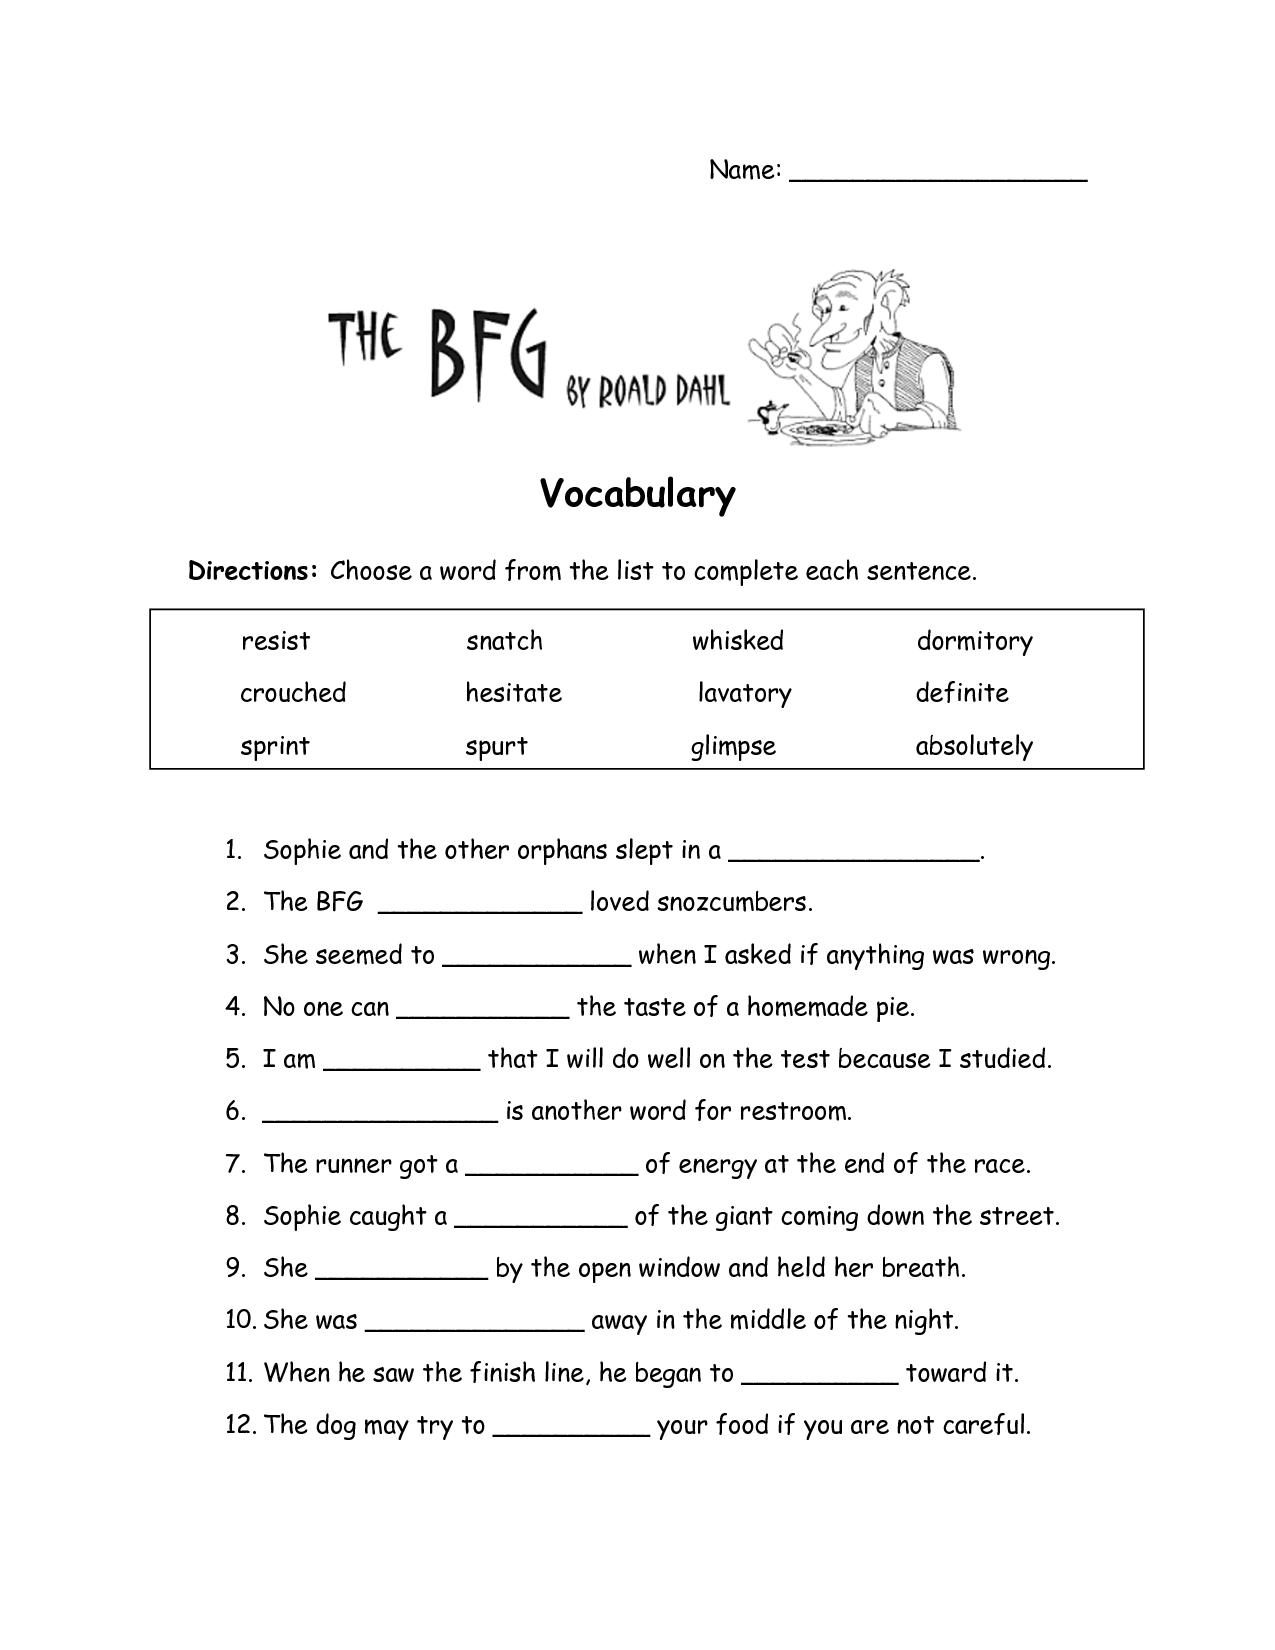 Worksheets Free Printable Vocabulary Worksheets the bfg worksheets vocabulary worksheet education items worksheet